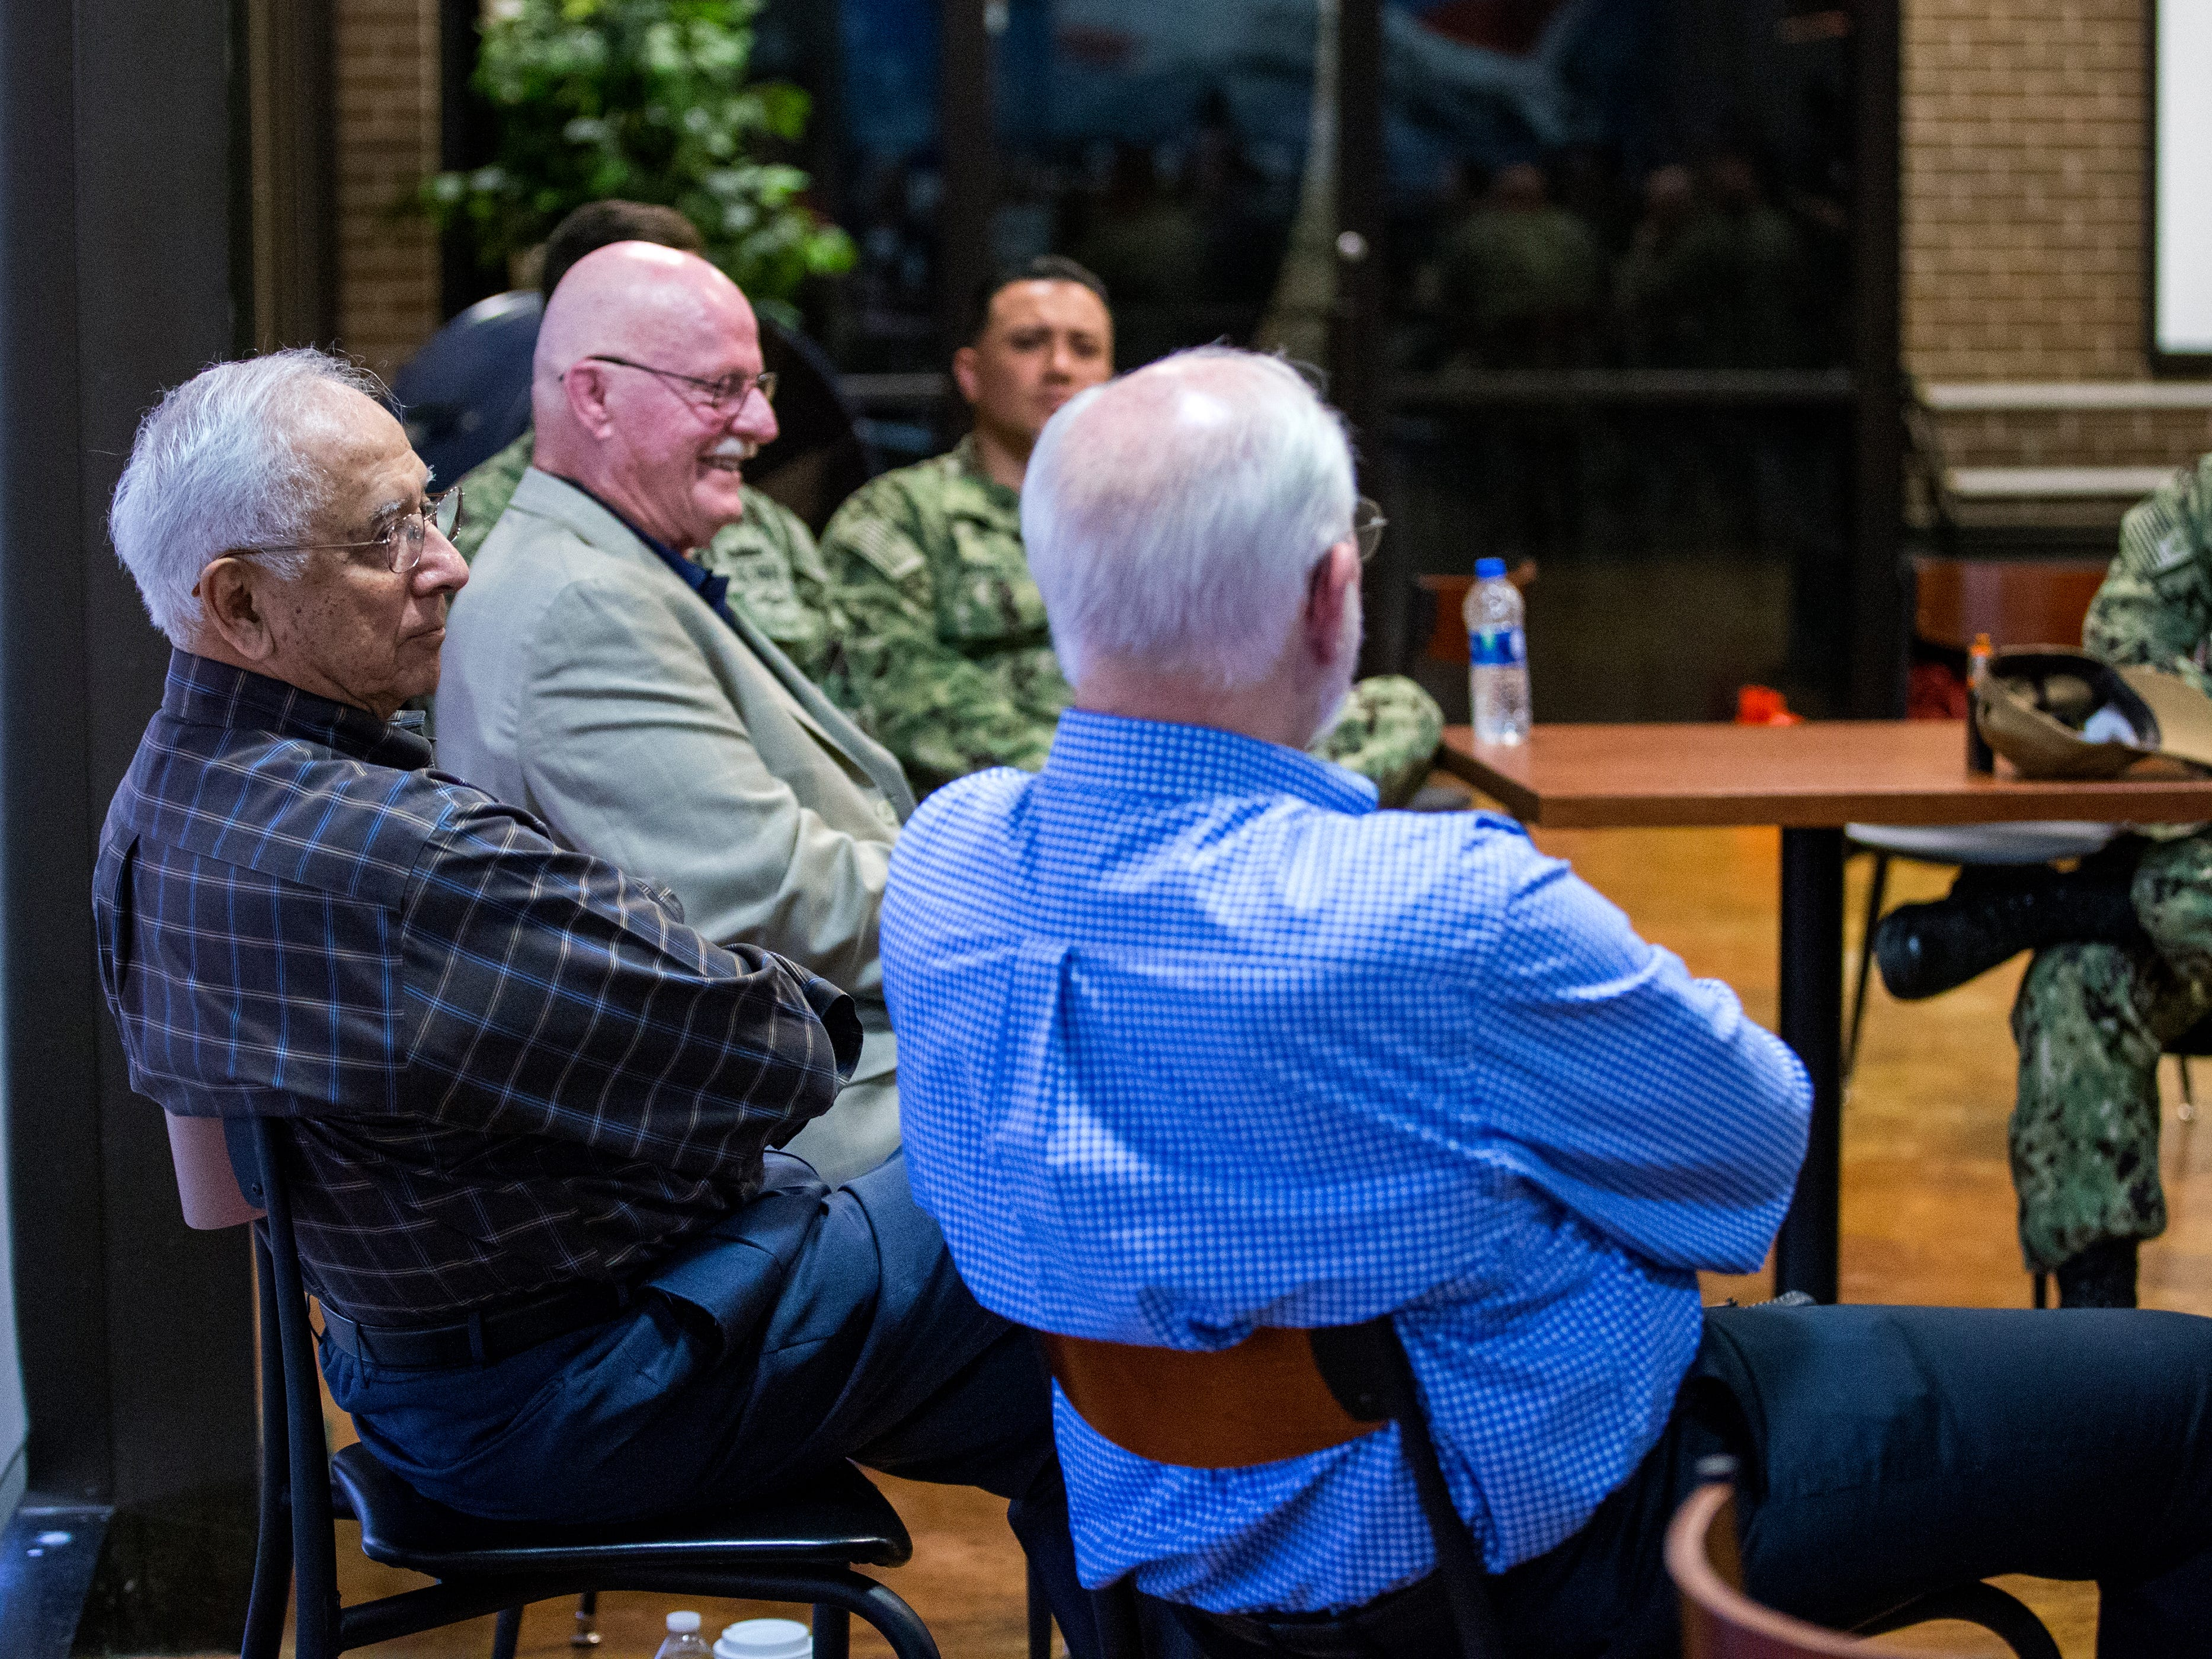 Former POWs retired Col. Dr. Thomas McNish (from front), retired Cmdr. Everett Alvarez Jr. and Capt. David Carey speak to pilots at Naval Air Station Kingsville on Wednesday, March 14, 2019 about their experiences. Alvarez said one of the things that helped them survive captivity was sticking together with a common goal of getting home.